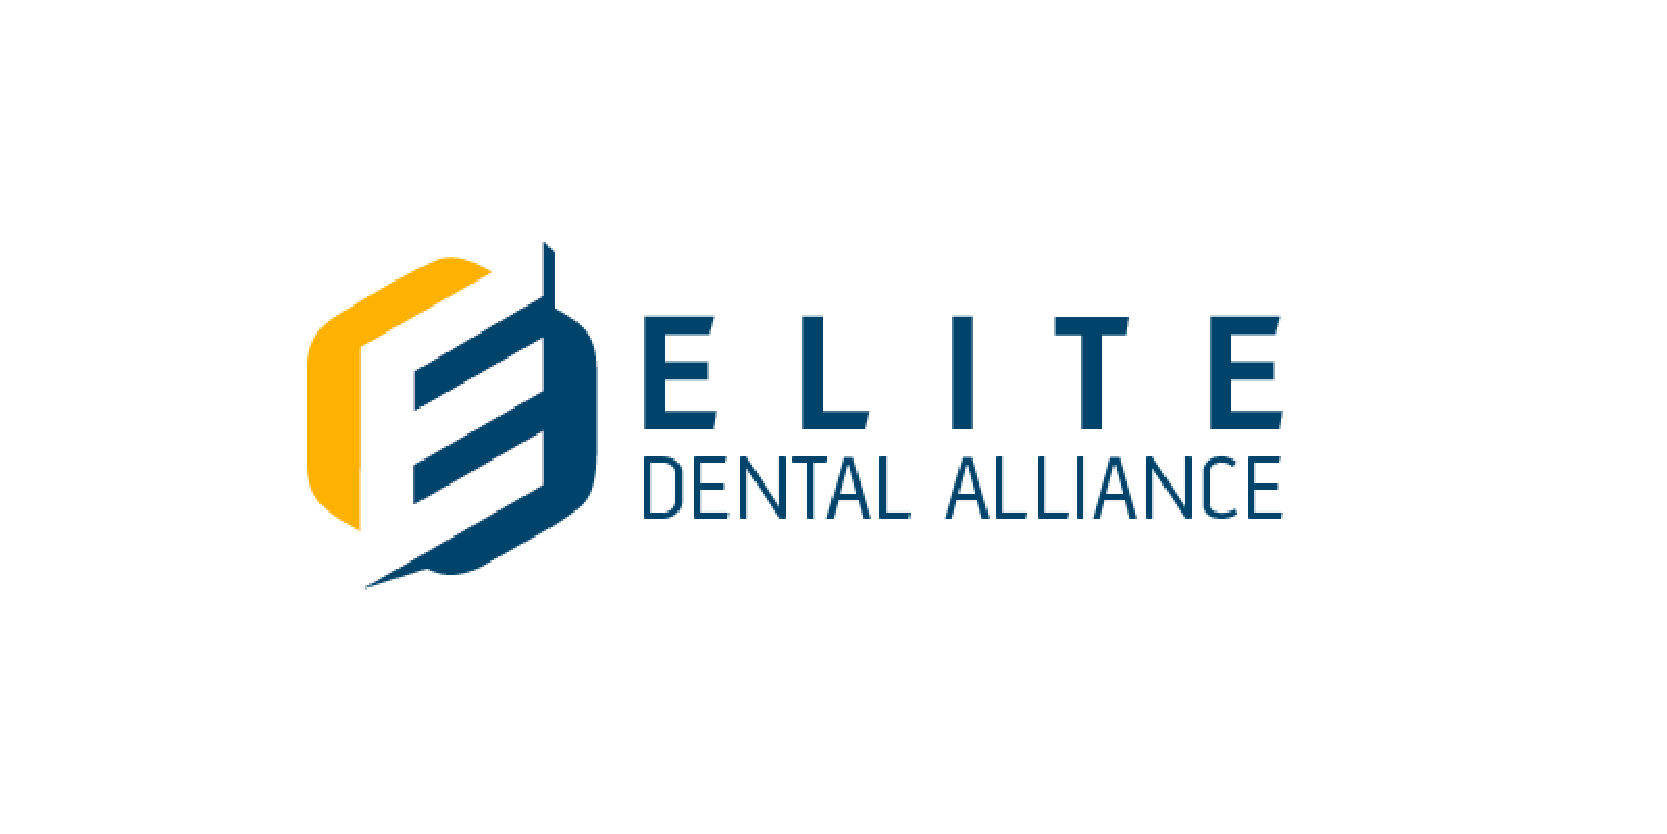 - Elite Dental Alliance is a membership organization built for the independent dental practice. By leveraging more than 75 years of dental experience and over $1.5 billion in collective production, Elite has created a marketplace of member-exclusive offers, all designed to take the guesswork and stress out of running a productive dental practice.